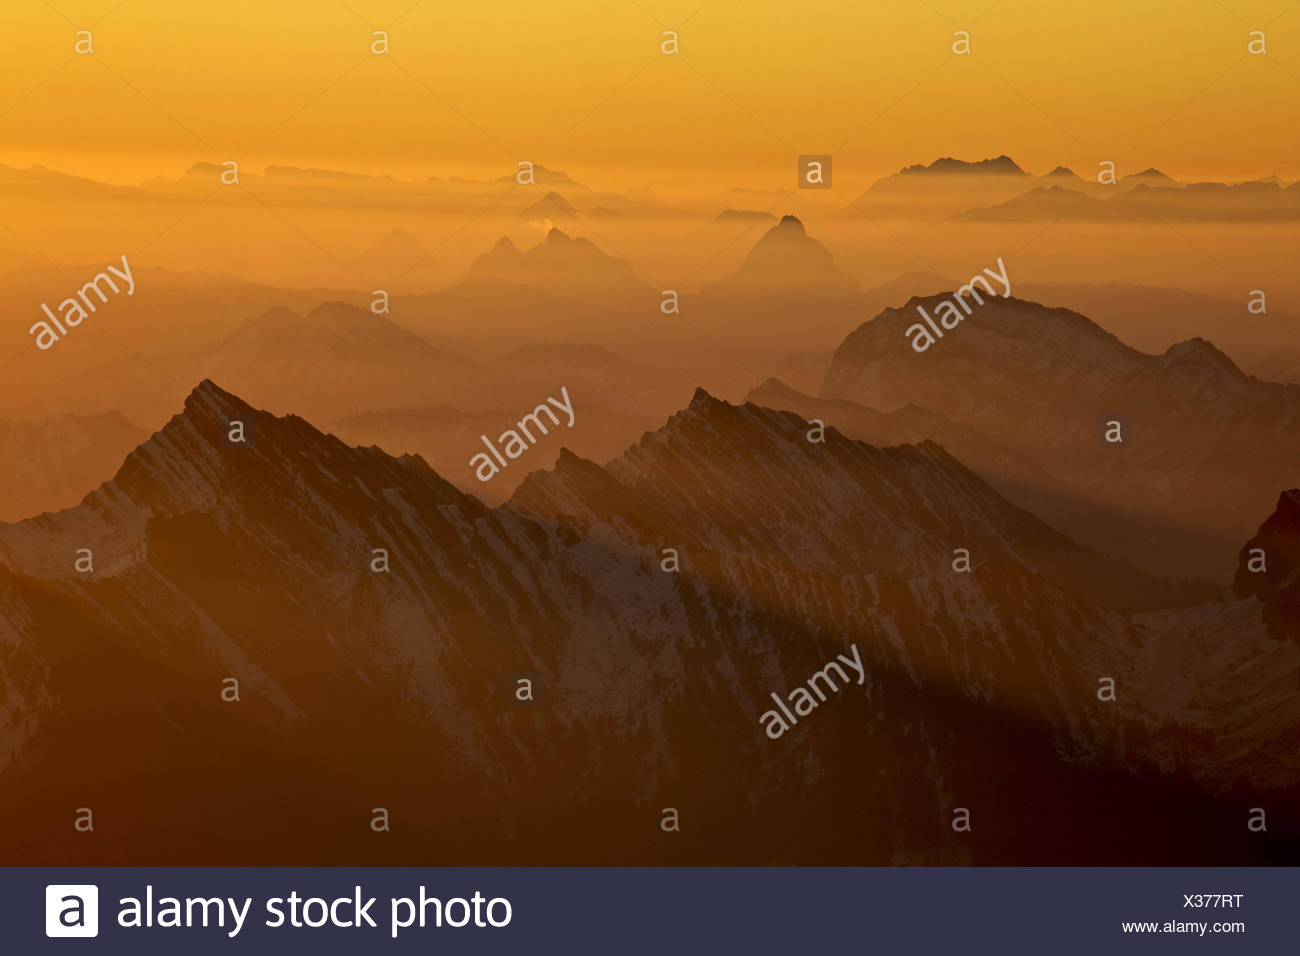 Switzerland, Appenzell, Appenzeller country, alp stone massif, Säntis, view into the direction of west, big myths, small myths, spear, - Stock Image